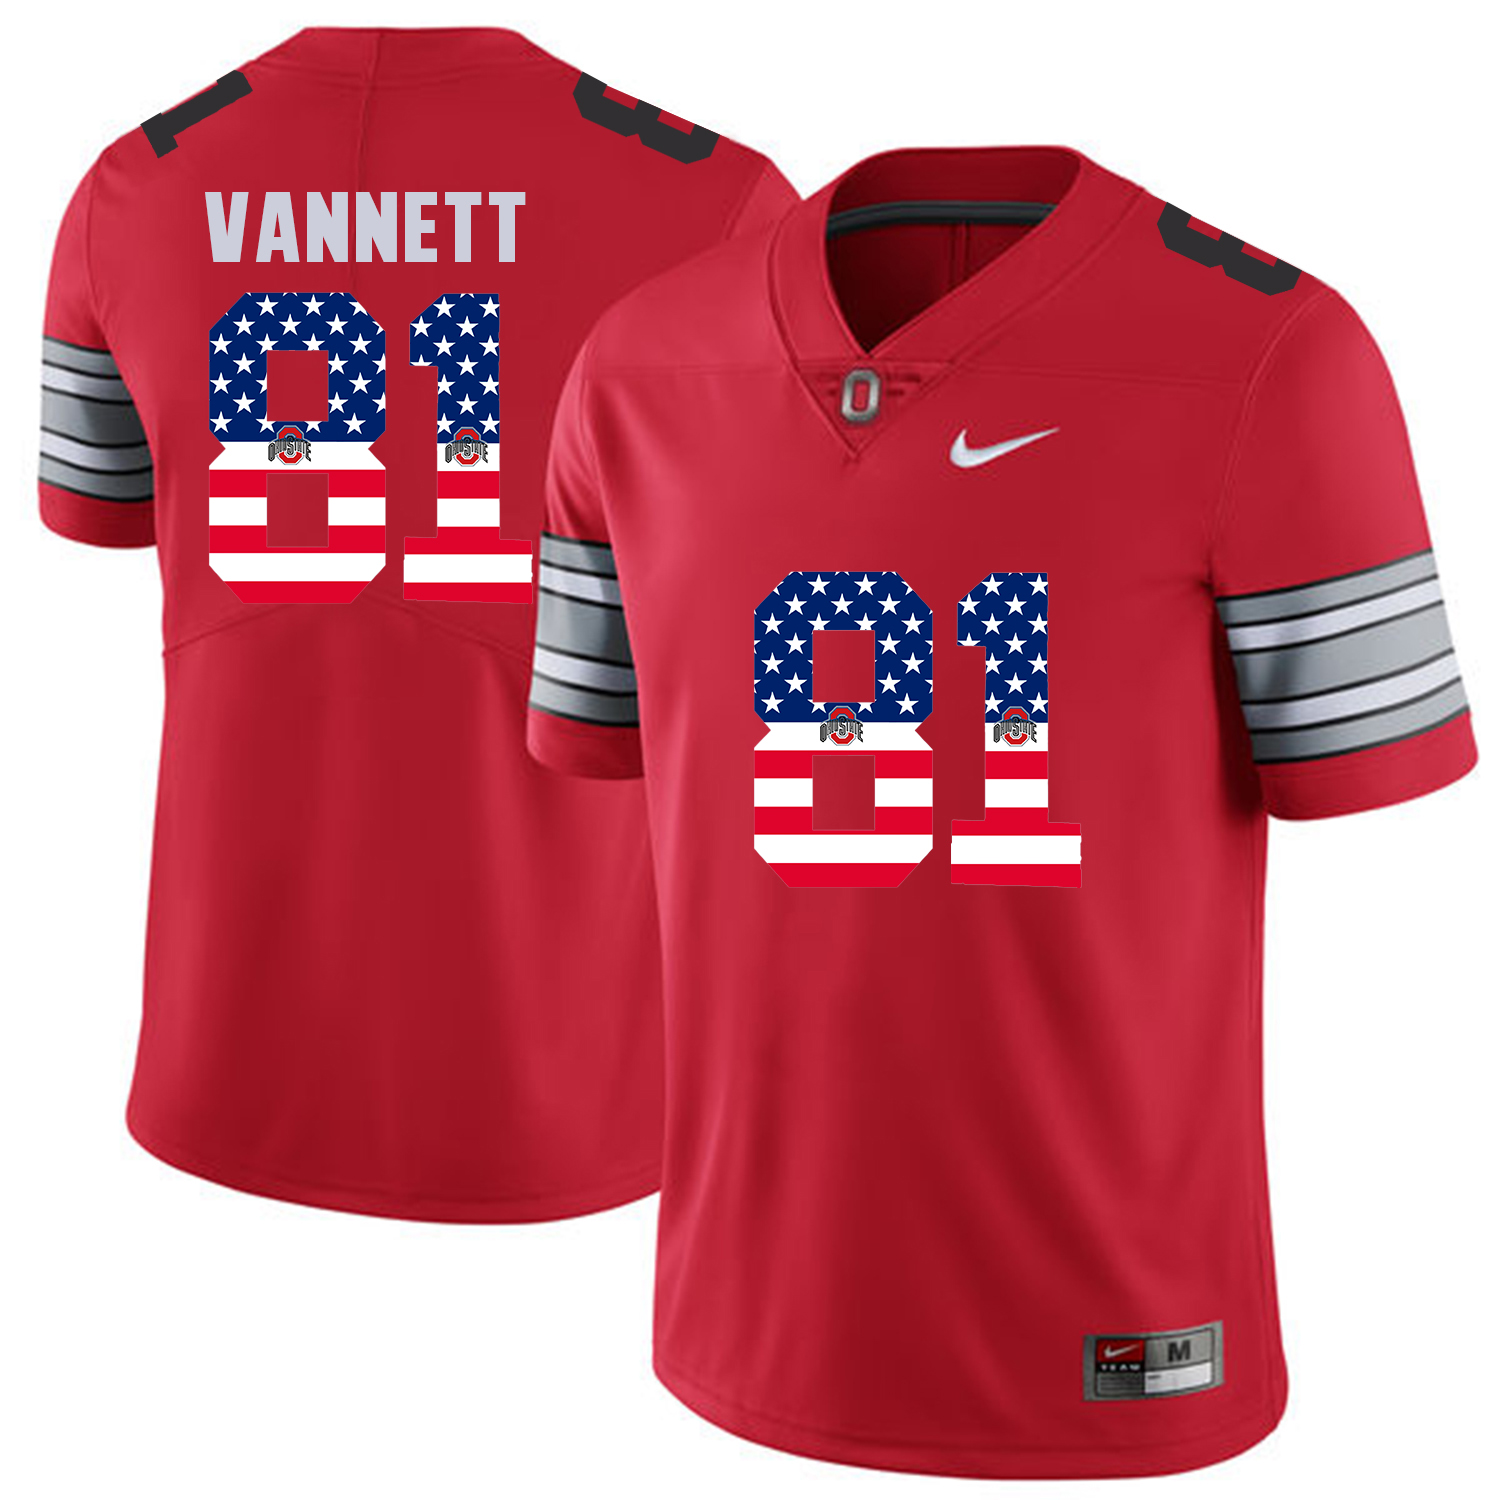 Men Ohio State 81 Vannett Red Flag Customized NCAA Jerseys